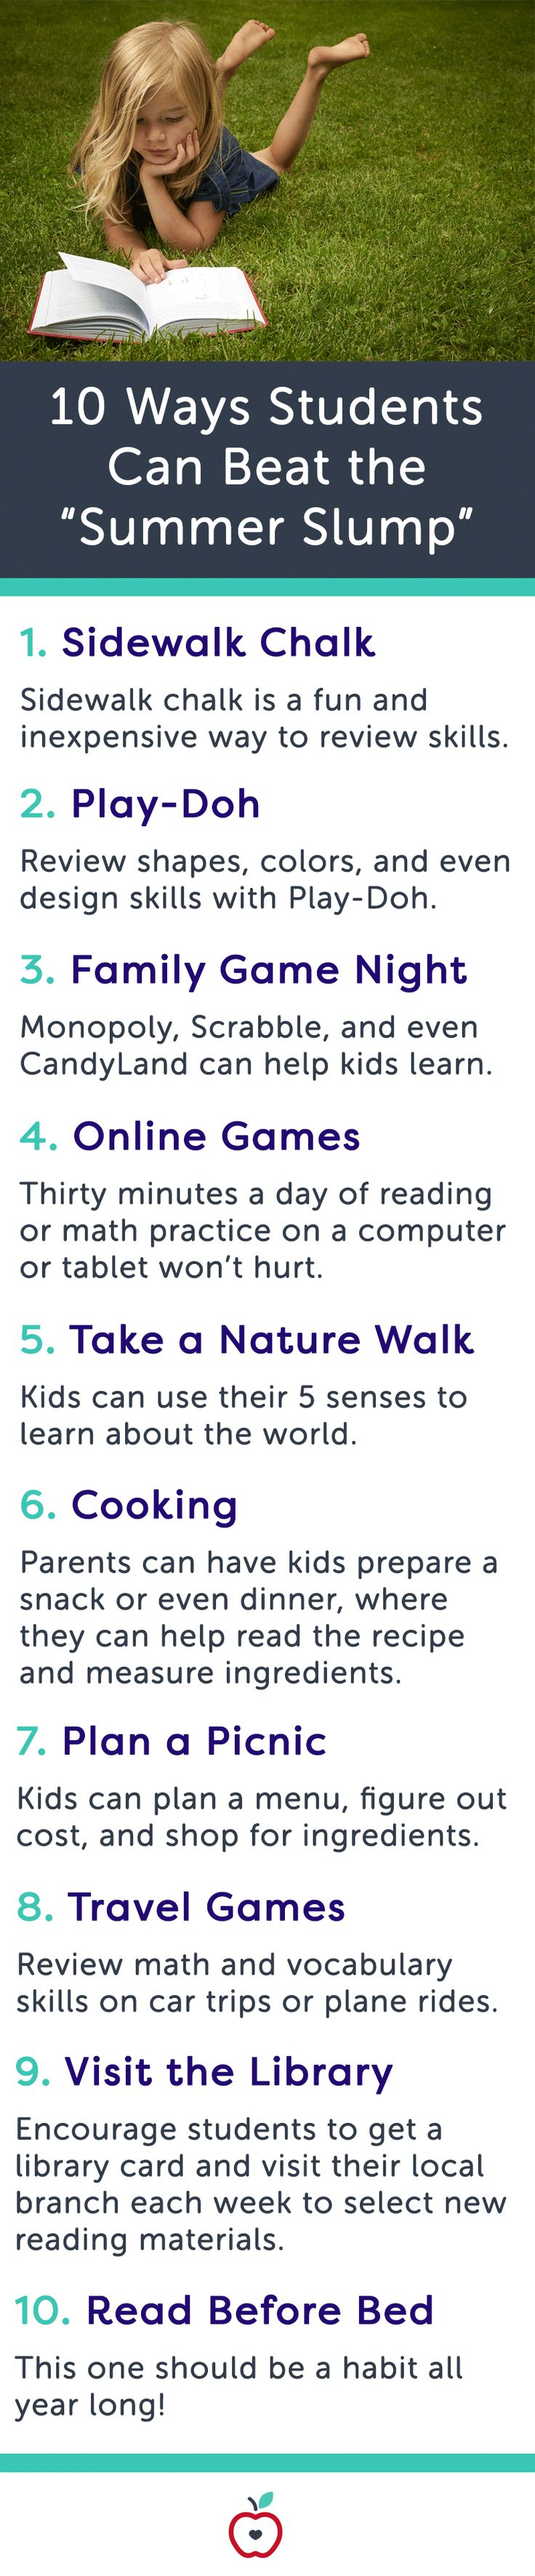 """10 Ways to Beat the """"Summer Slump"""" 